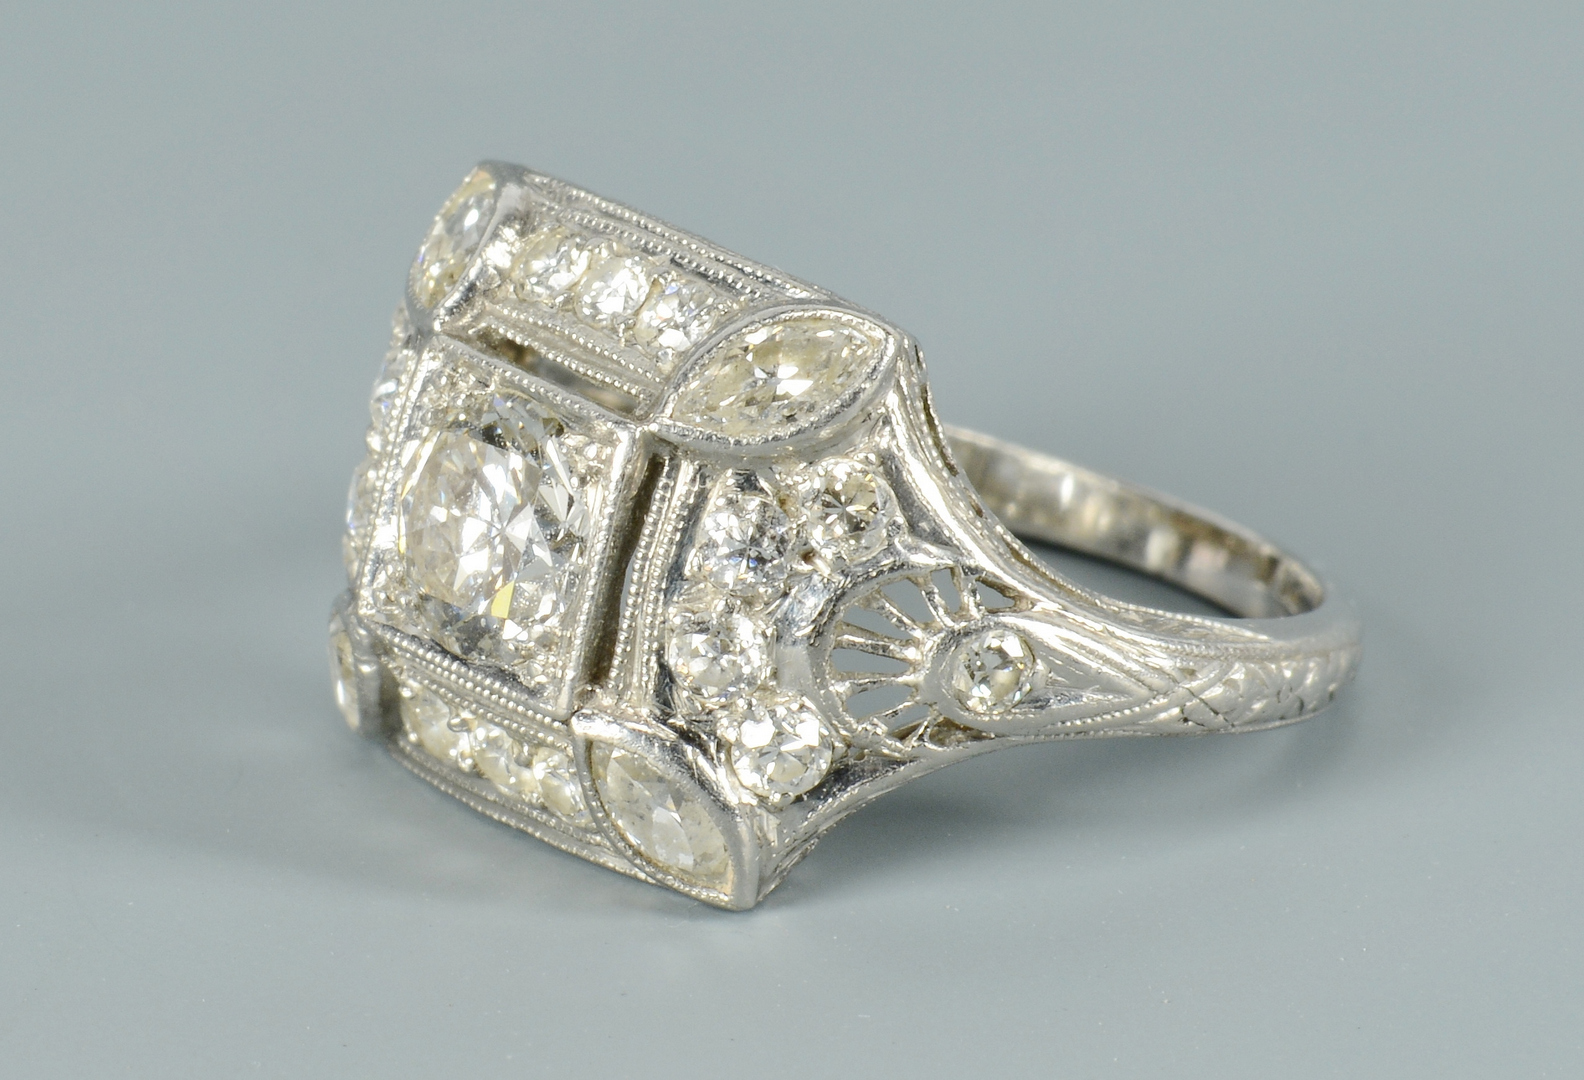 Lot 3088069: Art Deco Diamond Platinum Ring